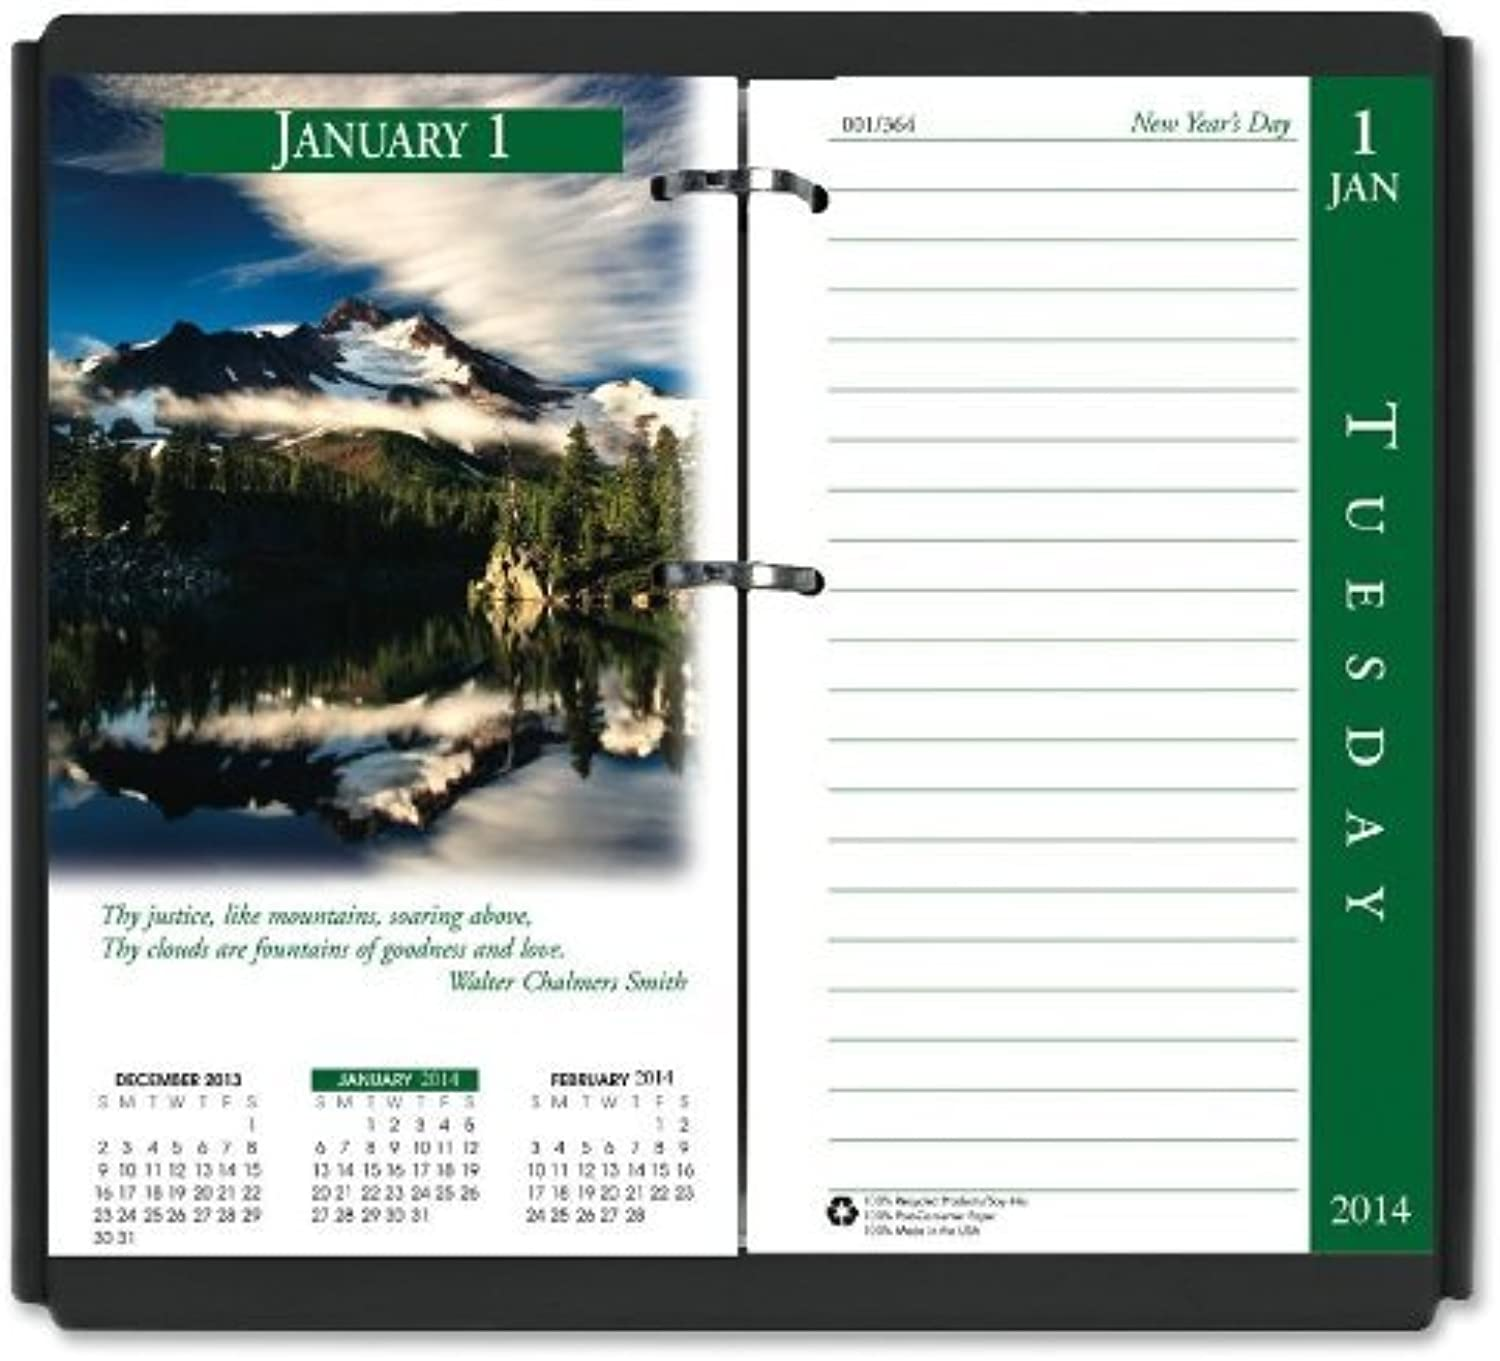 House of Doolittle Earthscapes Desk Calendar Refill 12 Months, January 2014 to December 2014, 3.5 x 6 Inches, Fits Standard  17 Base, Recycled (HOD417) by House of Doolittle B0141N5LG4 | Offizielle